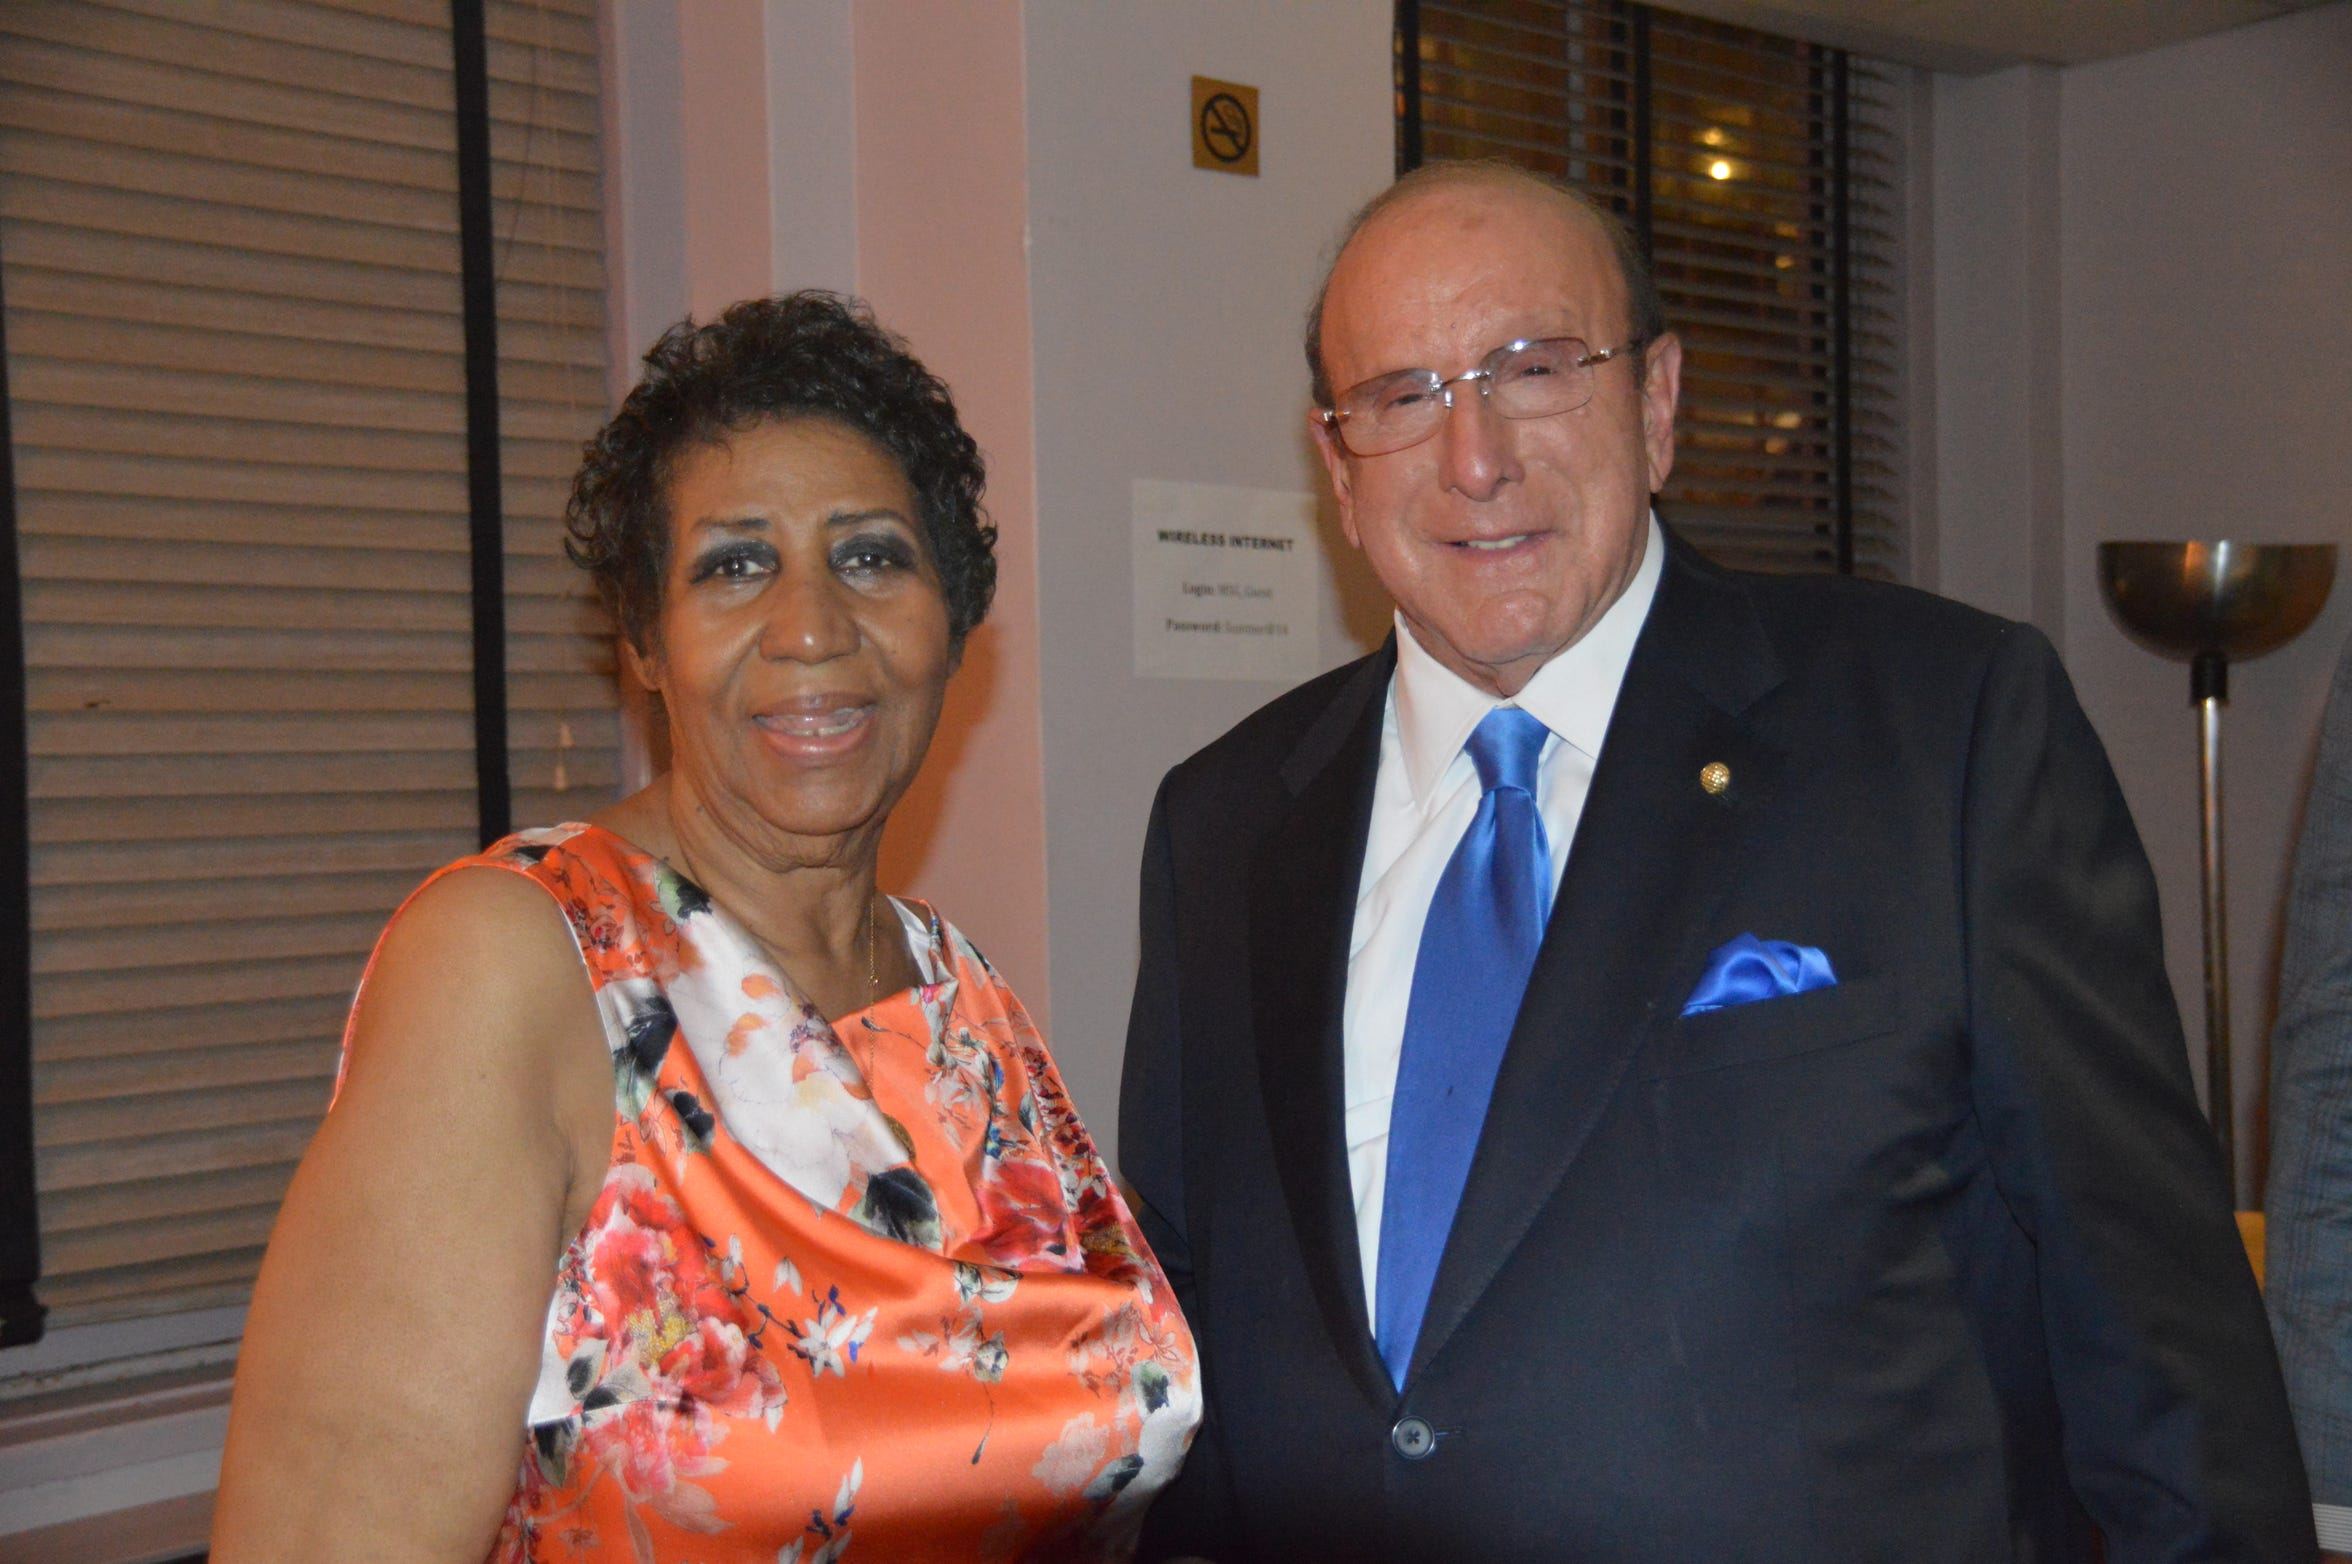 Aretha Franklin and Clive Davis, who signed her to Arista Records in the '80s.